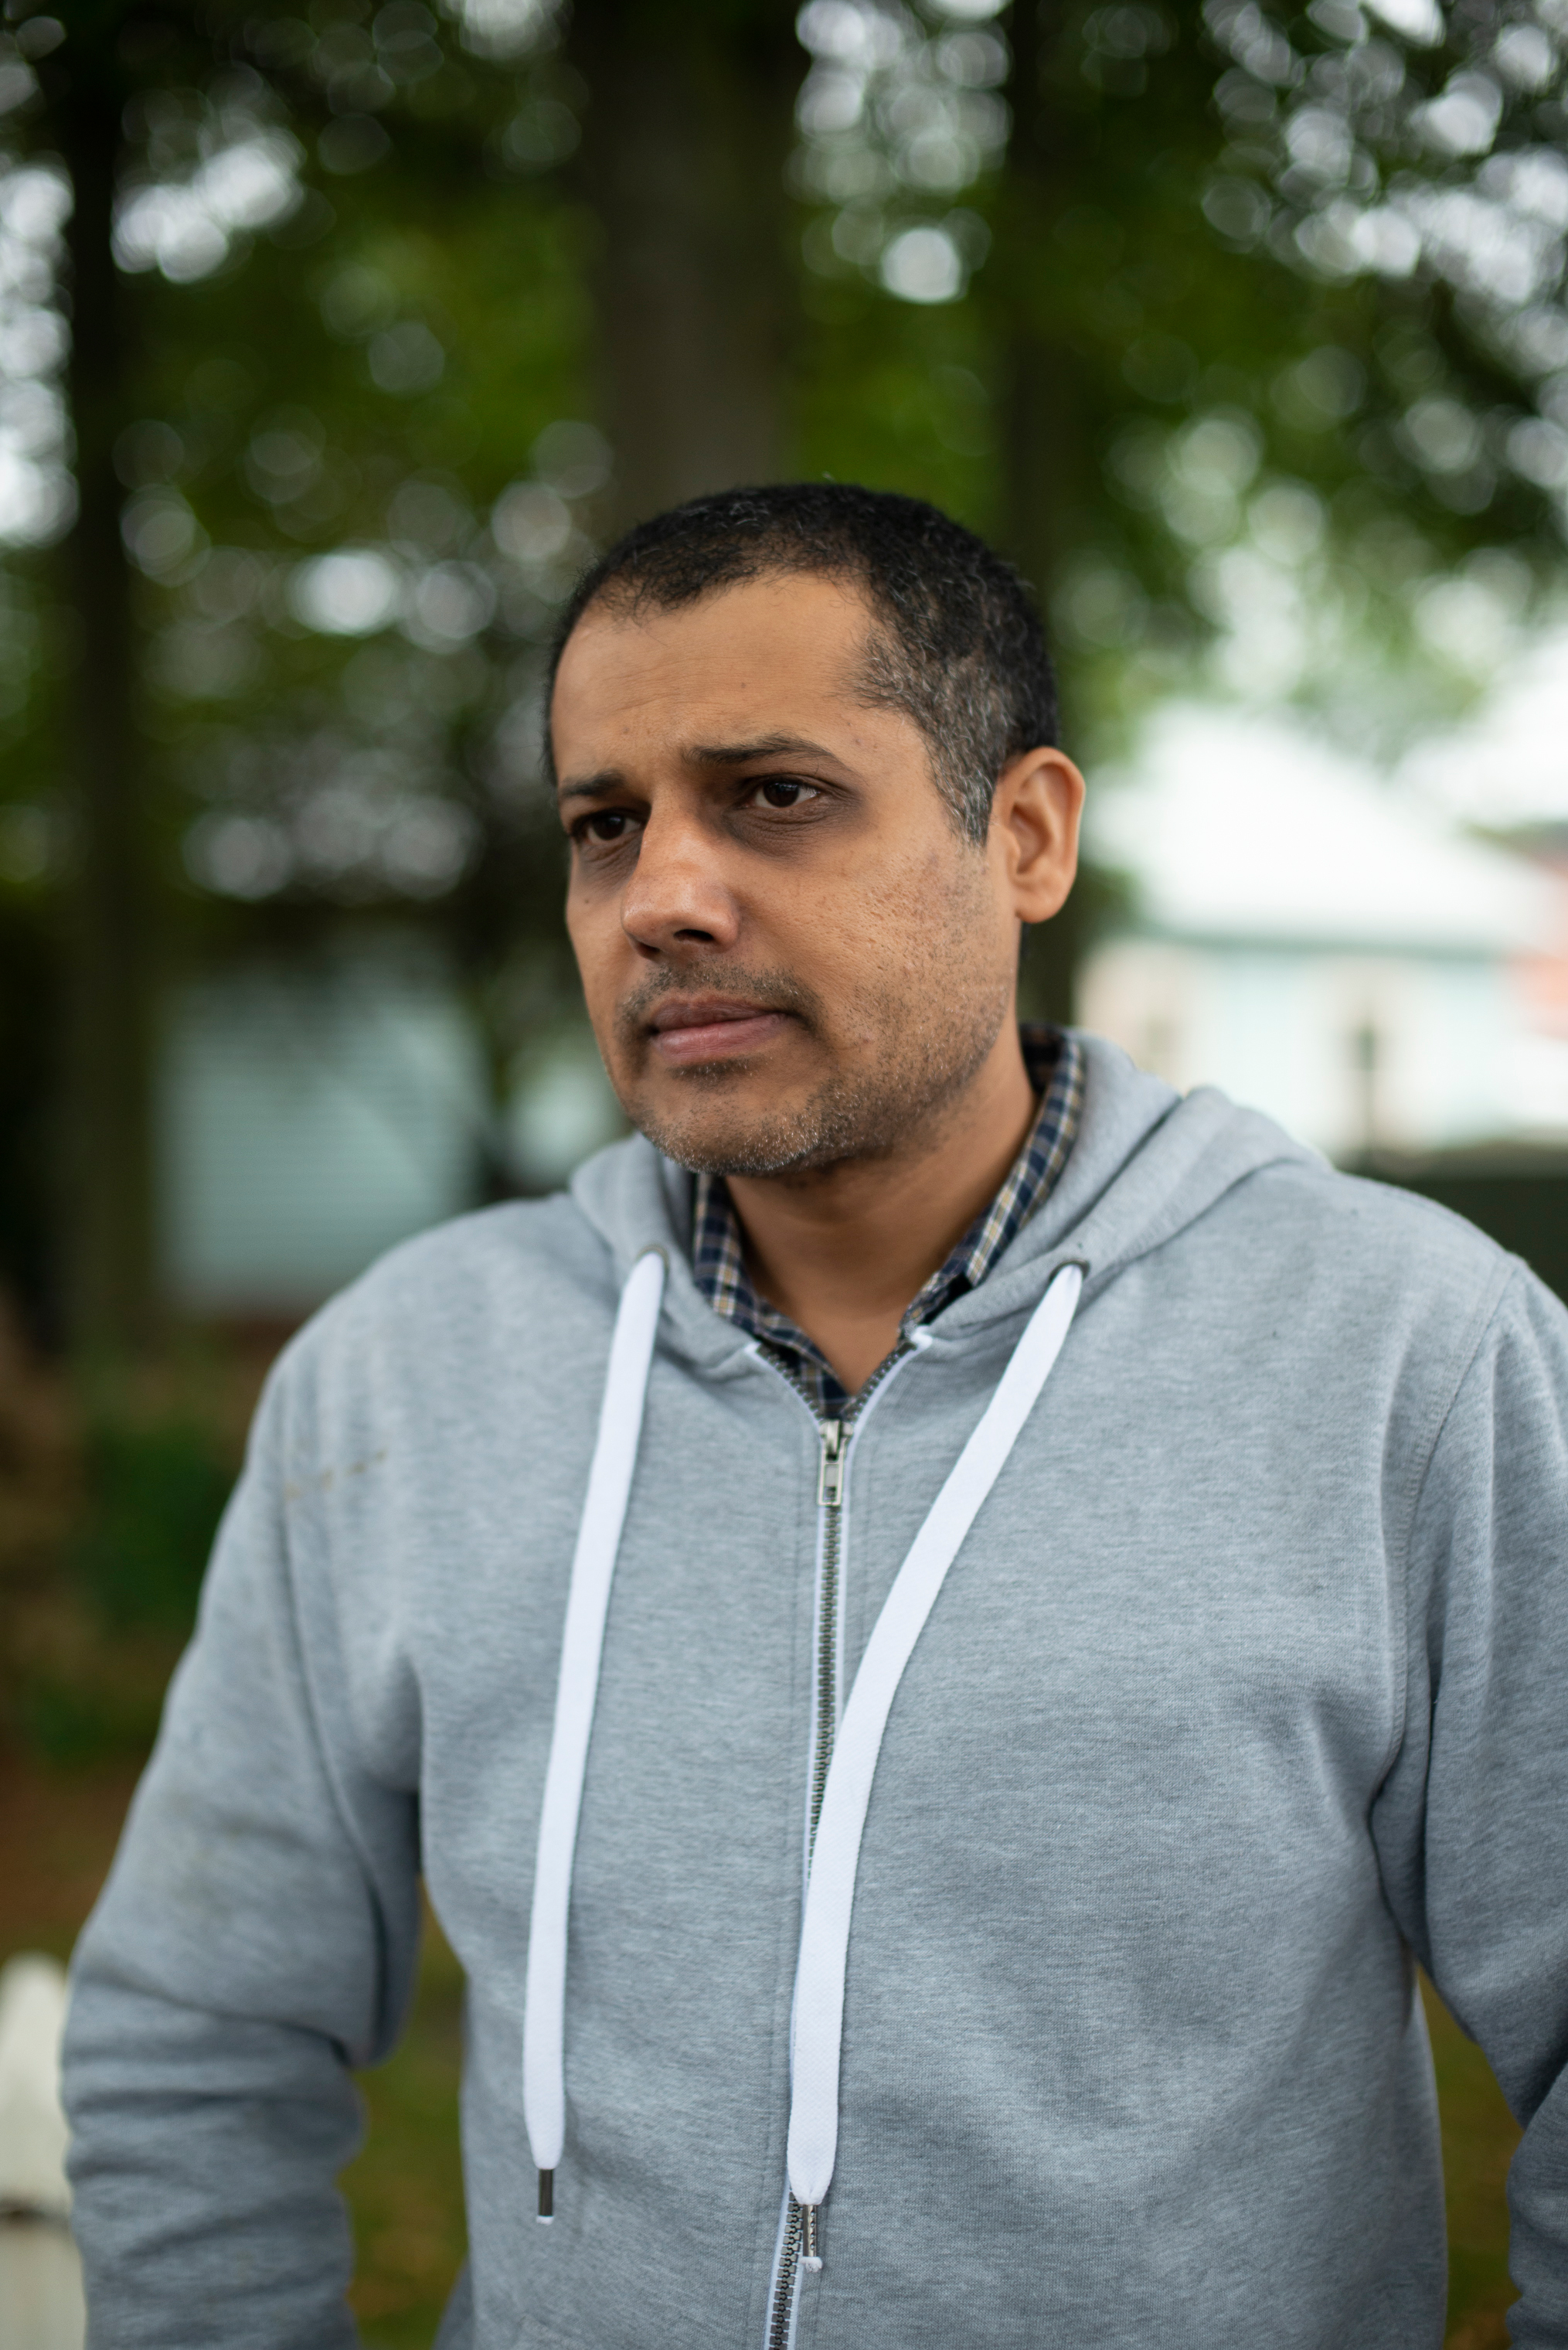 Mohsan Ali, 37, narrowly escaped the attack on the Al Noor mosque in Christchurch, New Zealand. His wife survived by hiding in a bathroom.